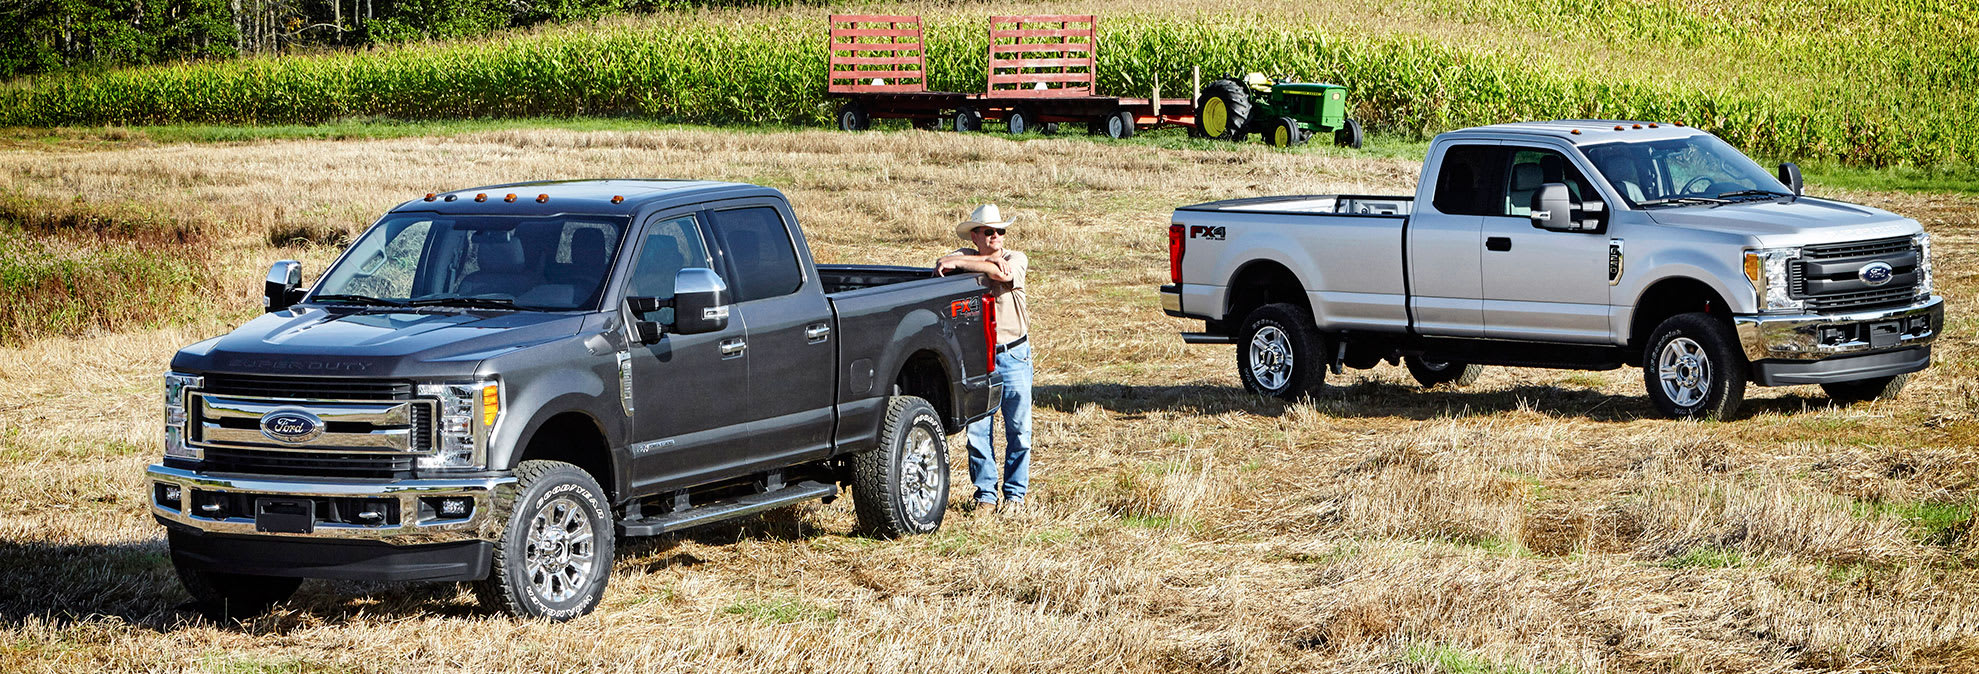 2017 Ford F250 Diesel Mpg >> Heavy Duty Pickup Truck Fuel Economy Consumer Reports